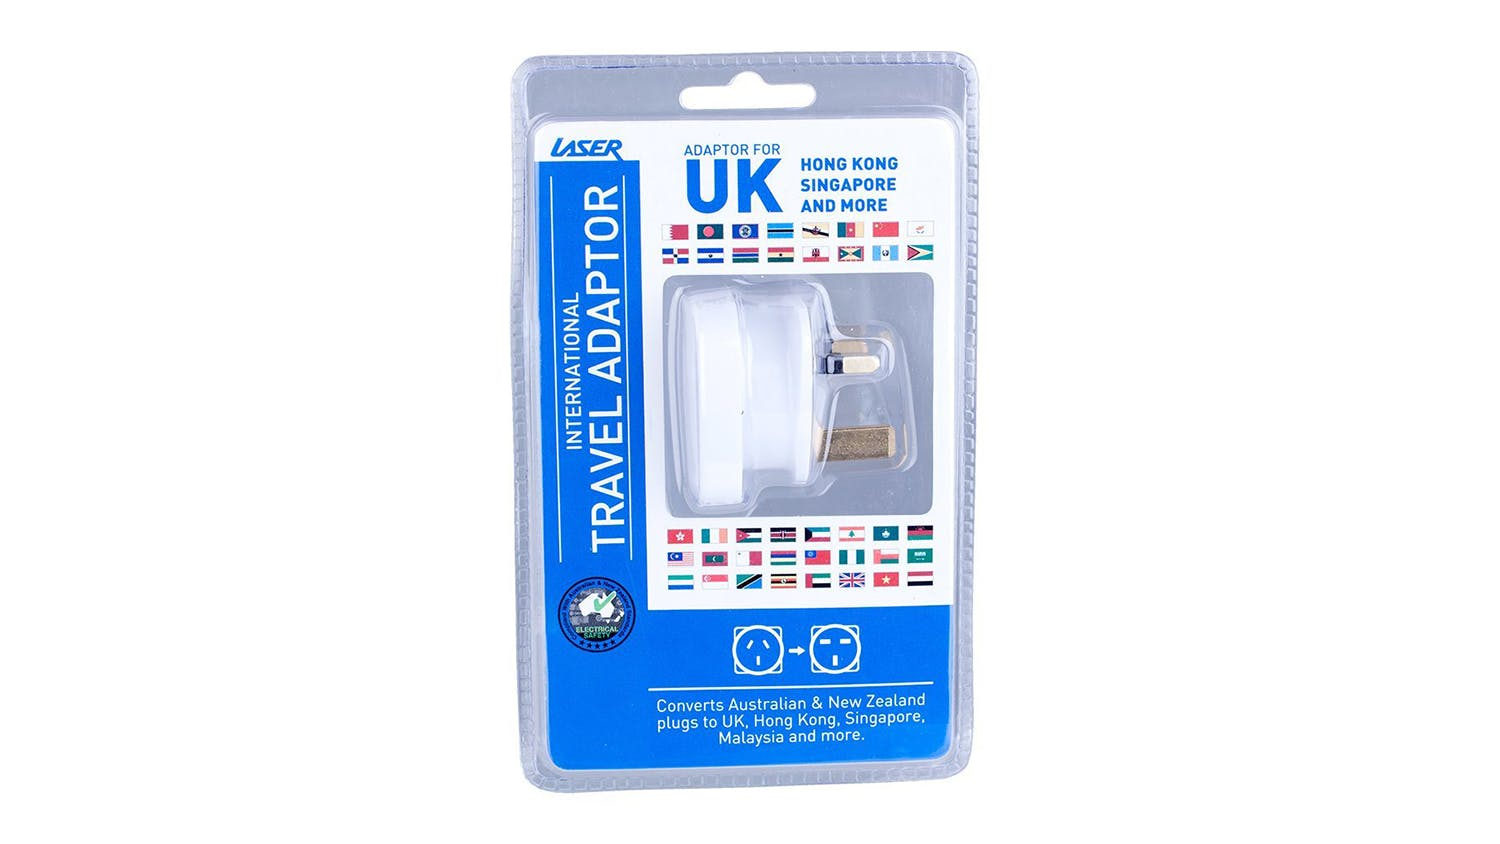 Laser Travel Adapter - UK, HK, Malaysia